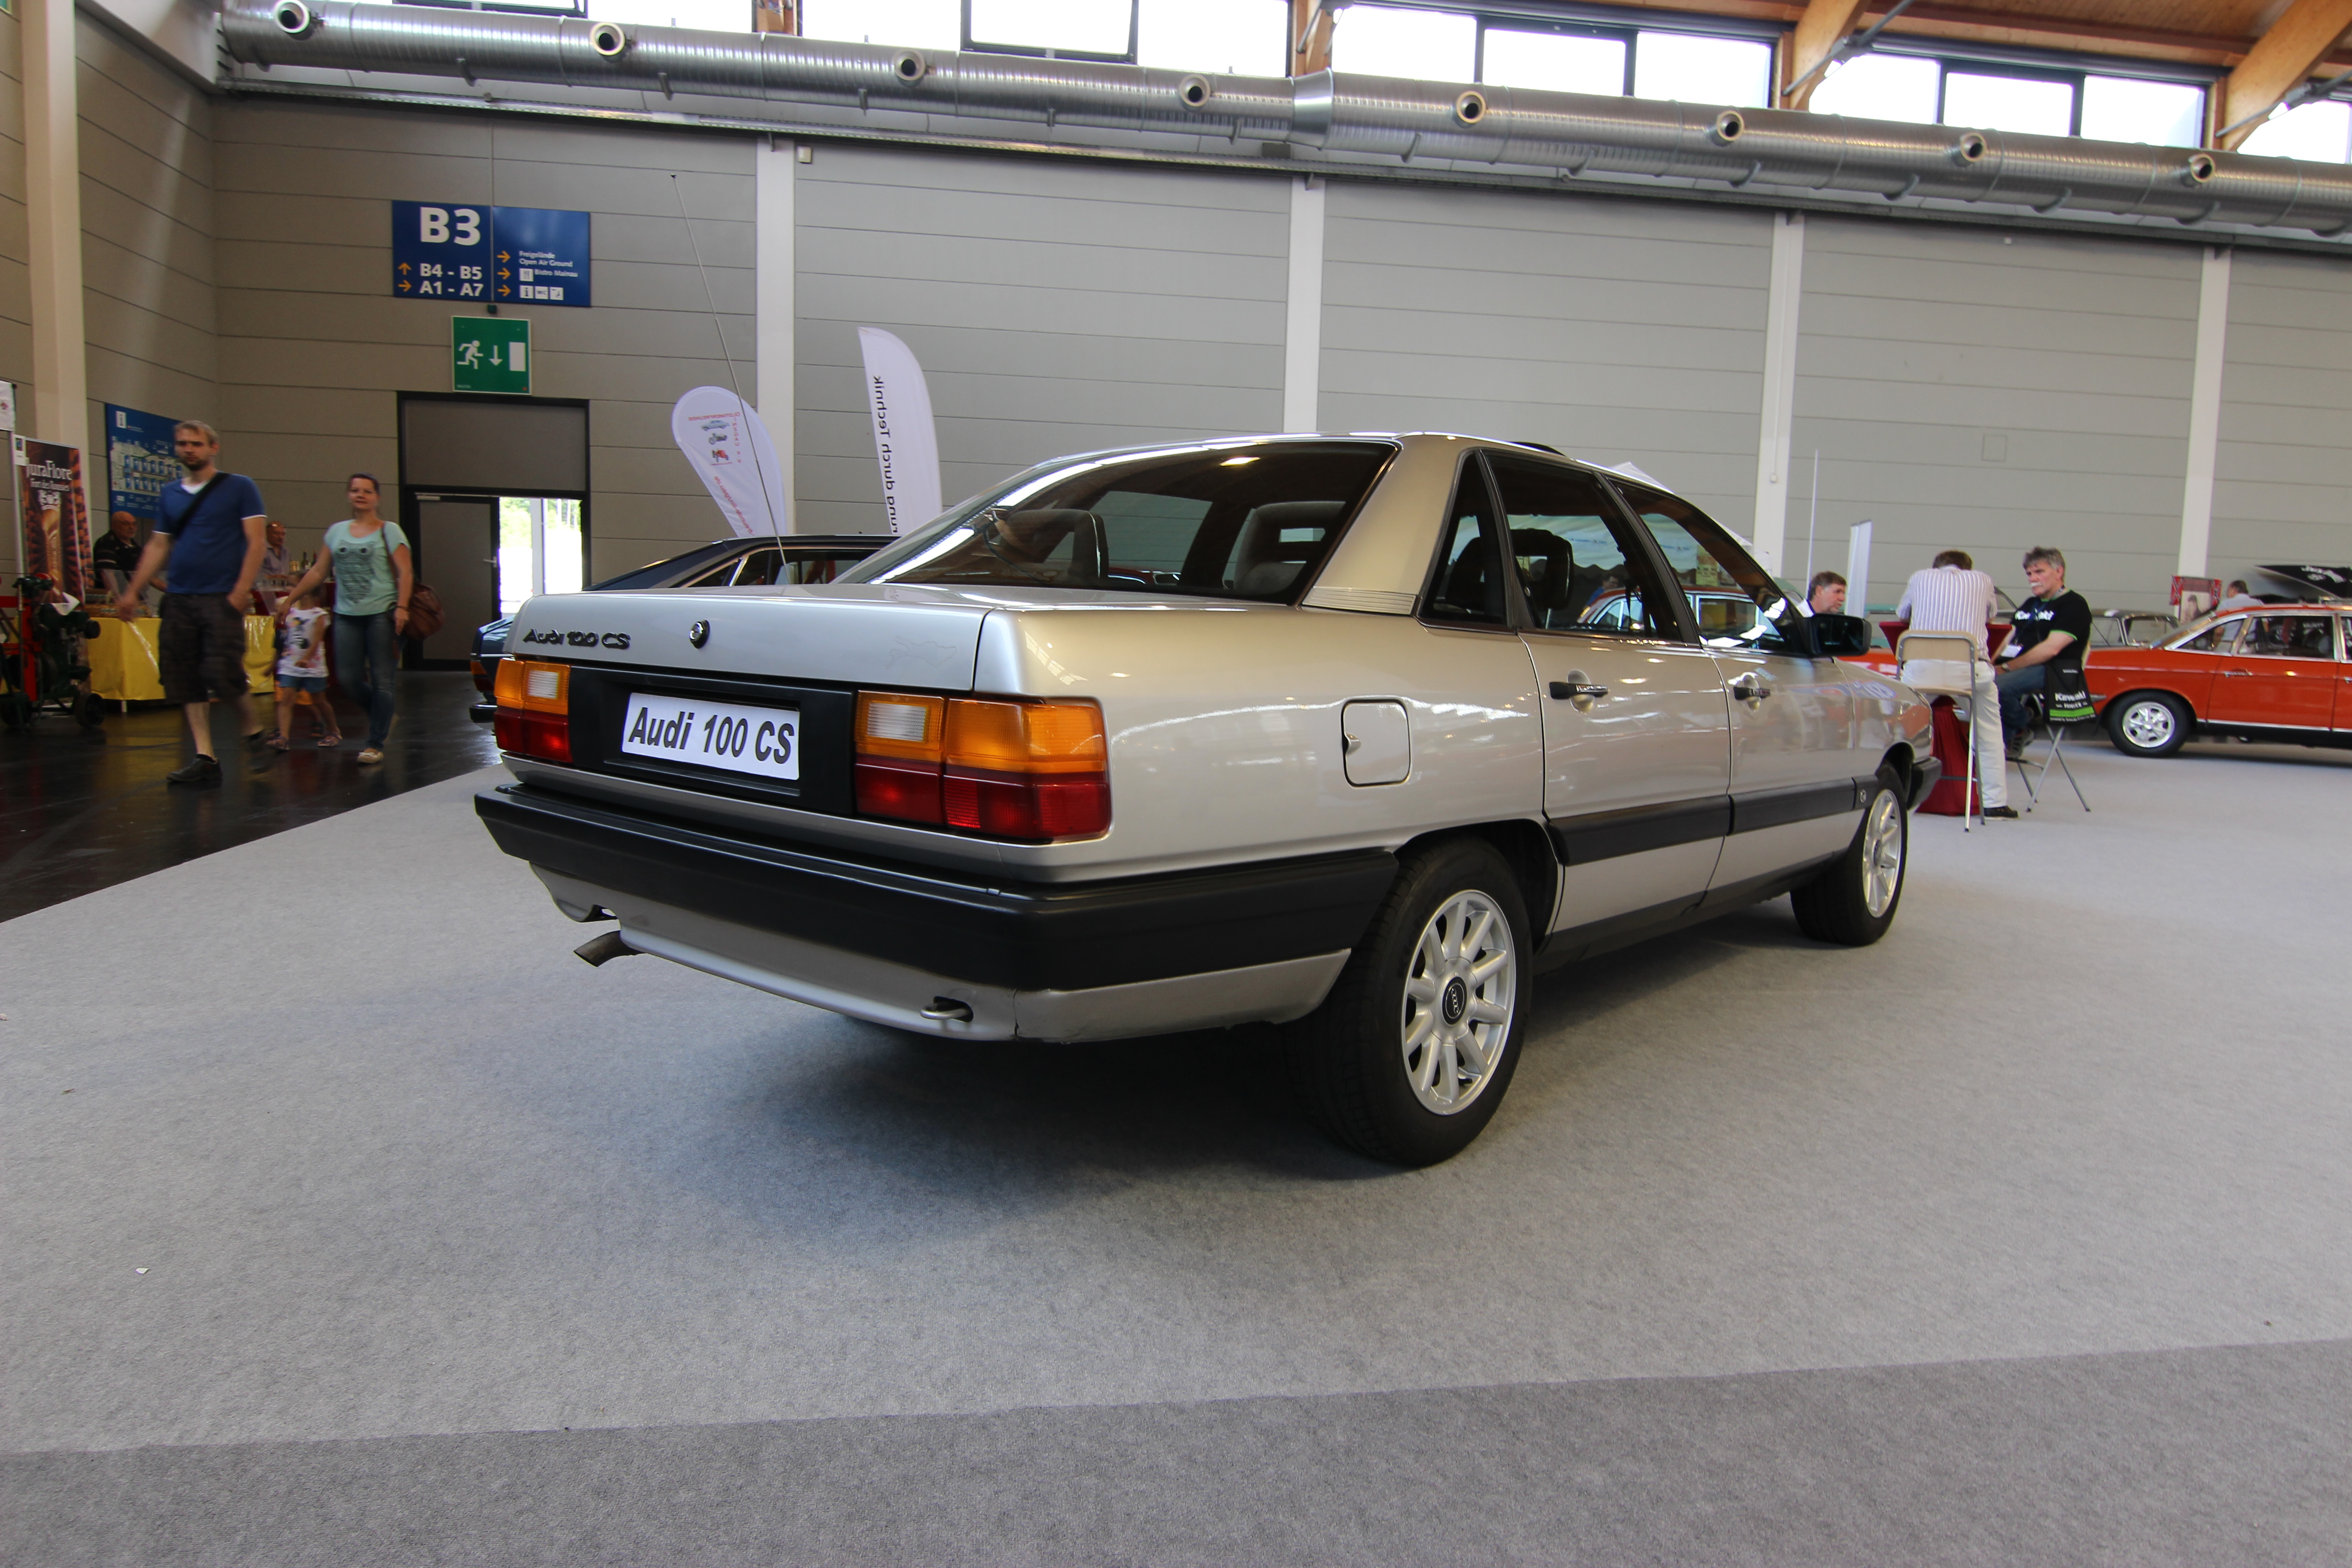 Audi Build Your Own >> File:Audi 100 C3 Typ 44 Limo 14062014 (Foto Hilarmont) (2).JPG - Wikimedia Commons